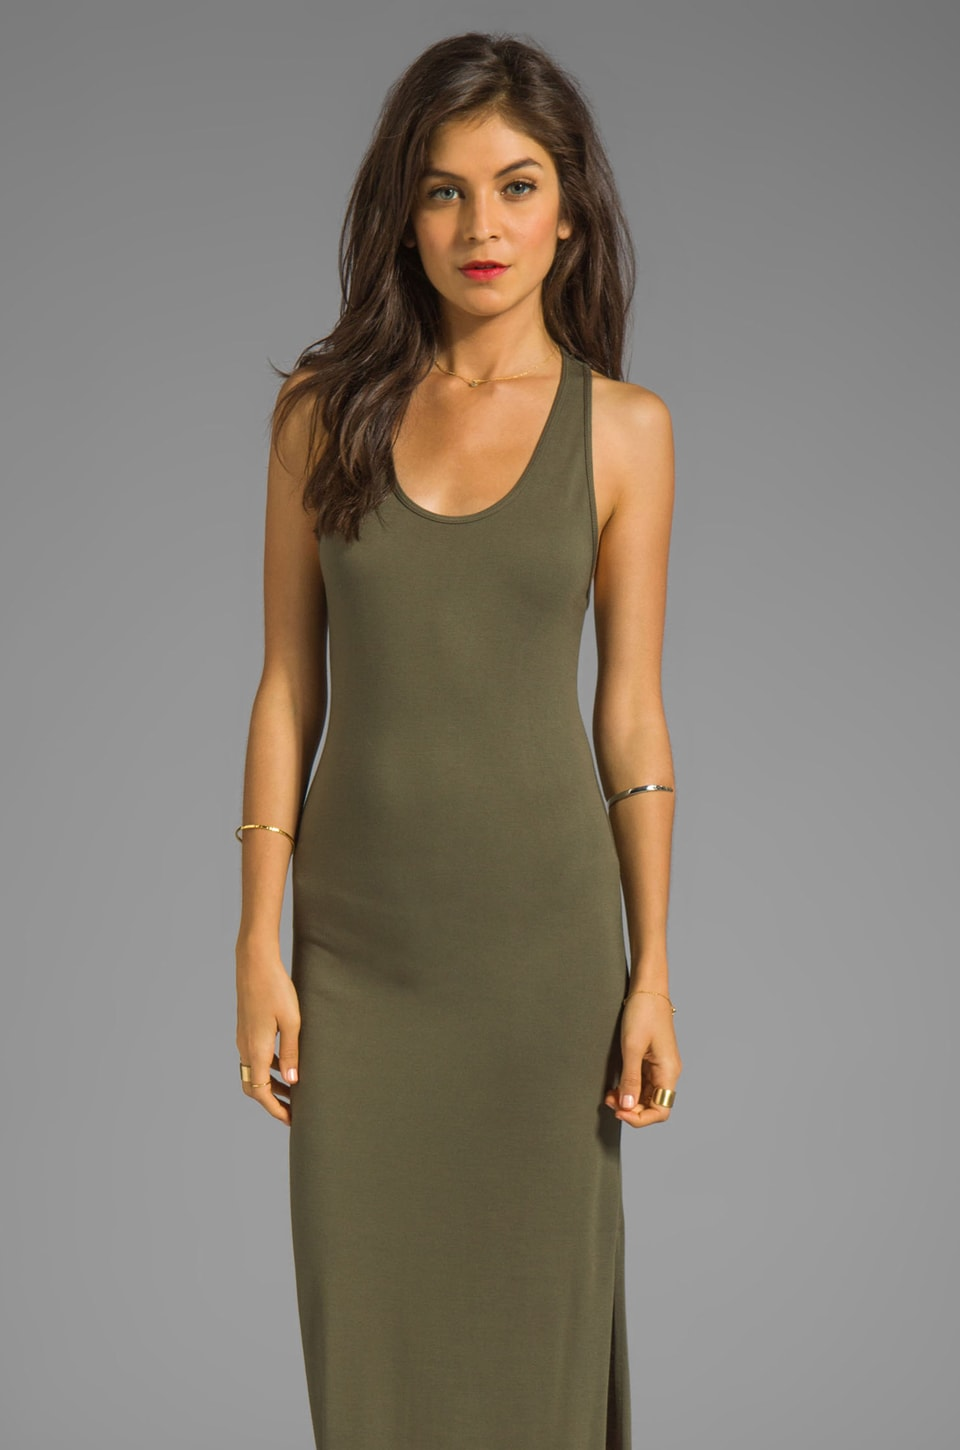 Haute Hippie Scoop Neck Tank Dress in Military